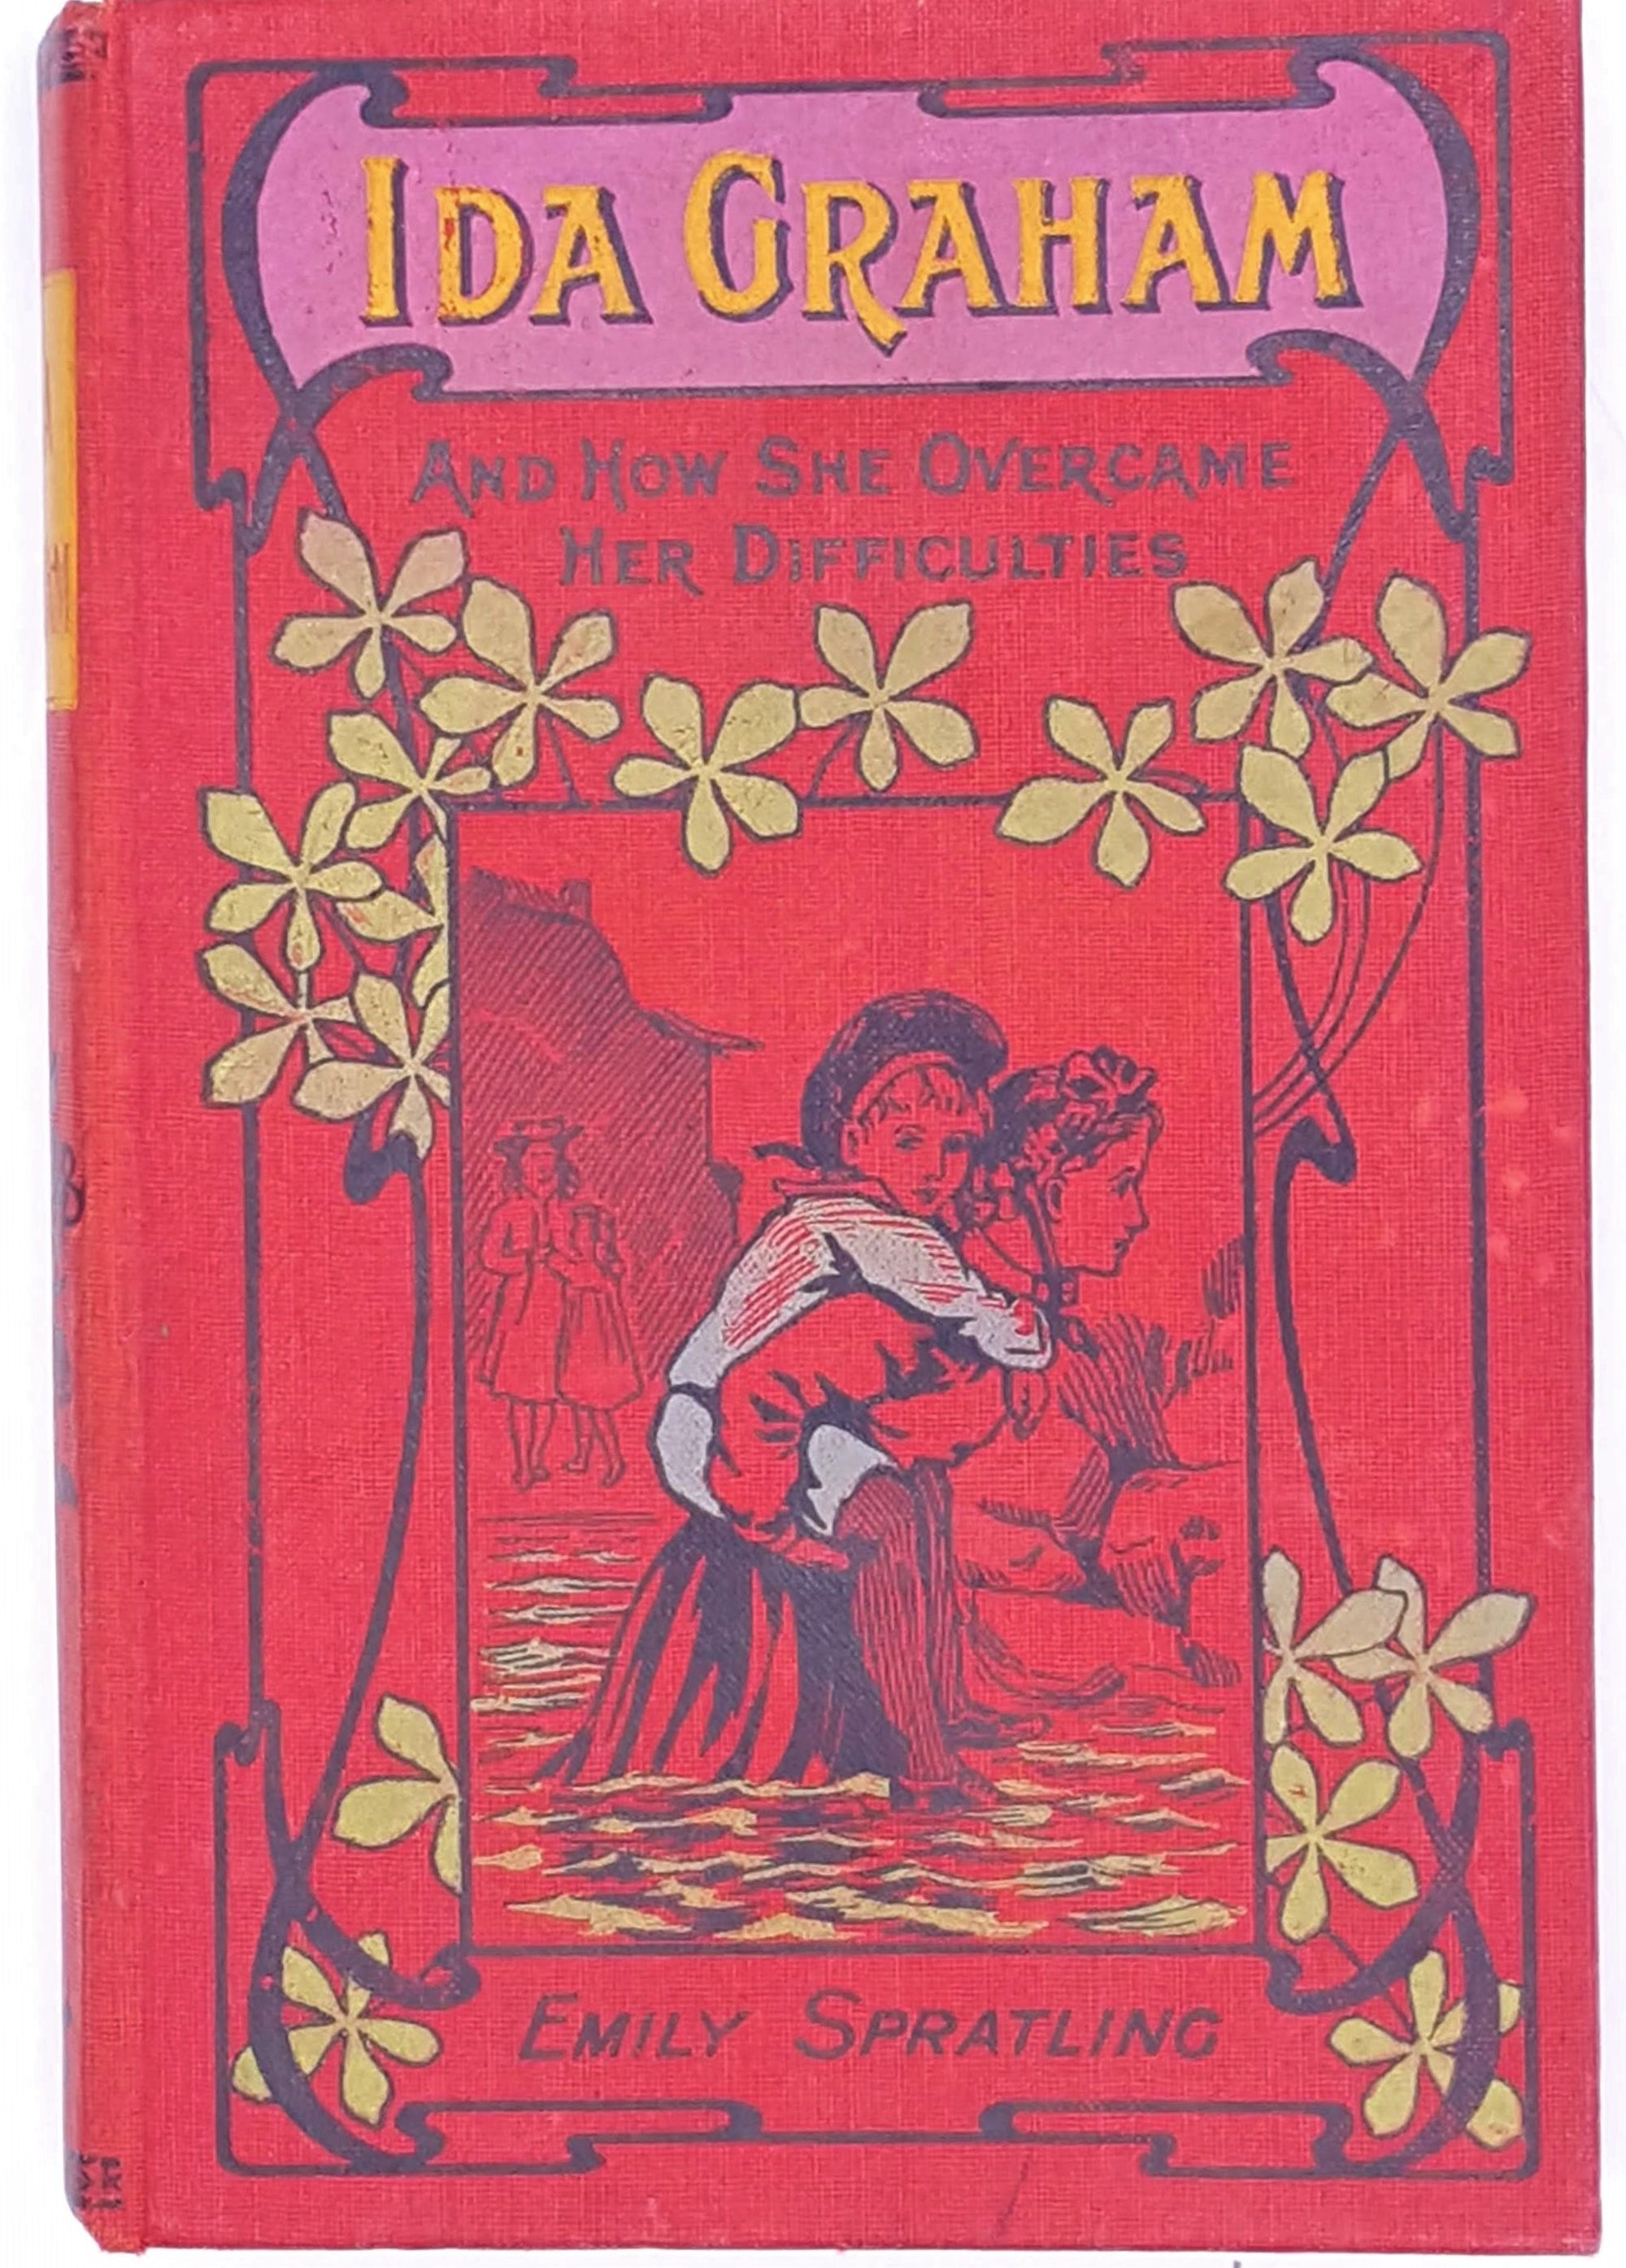 Ida Graham and How She Overcame her Difficulties by Emily Spratling 1903